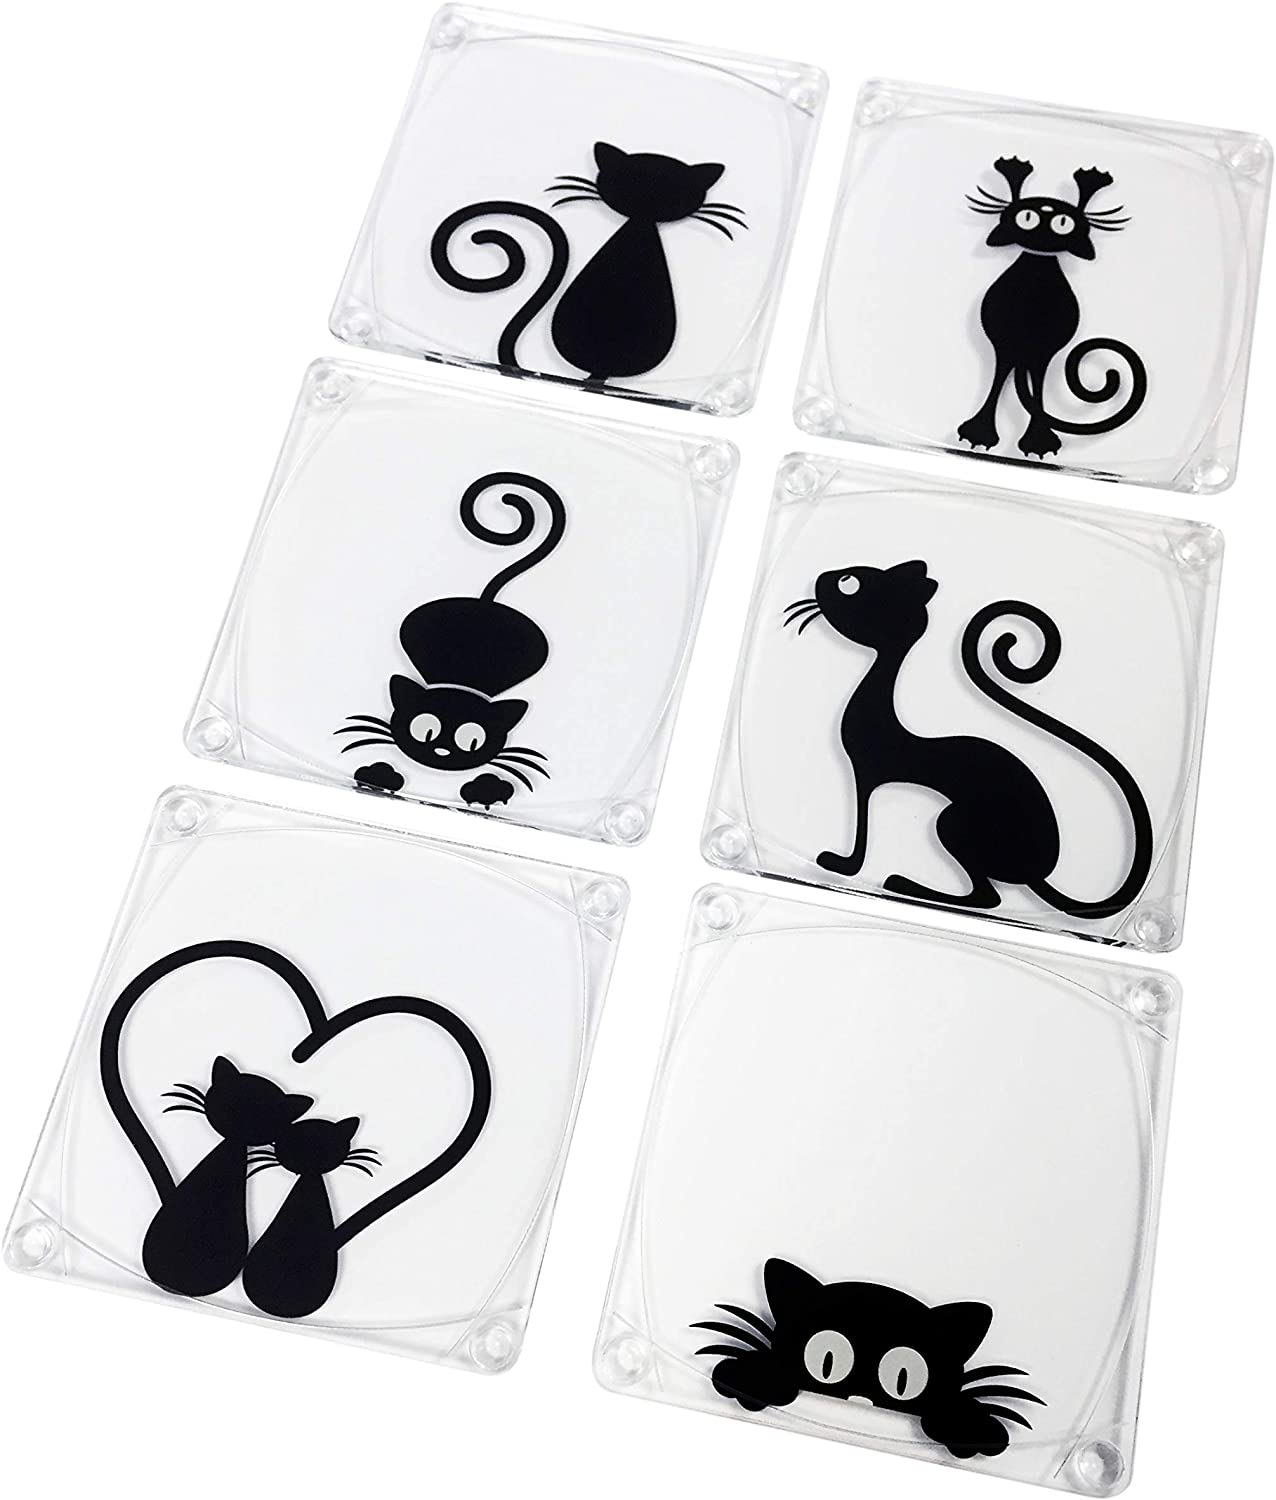 Idea Design Studio Acrylic Coasters with Black Cats Design with Clear Acrylic Holder (Set of 6)